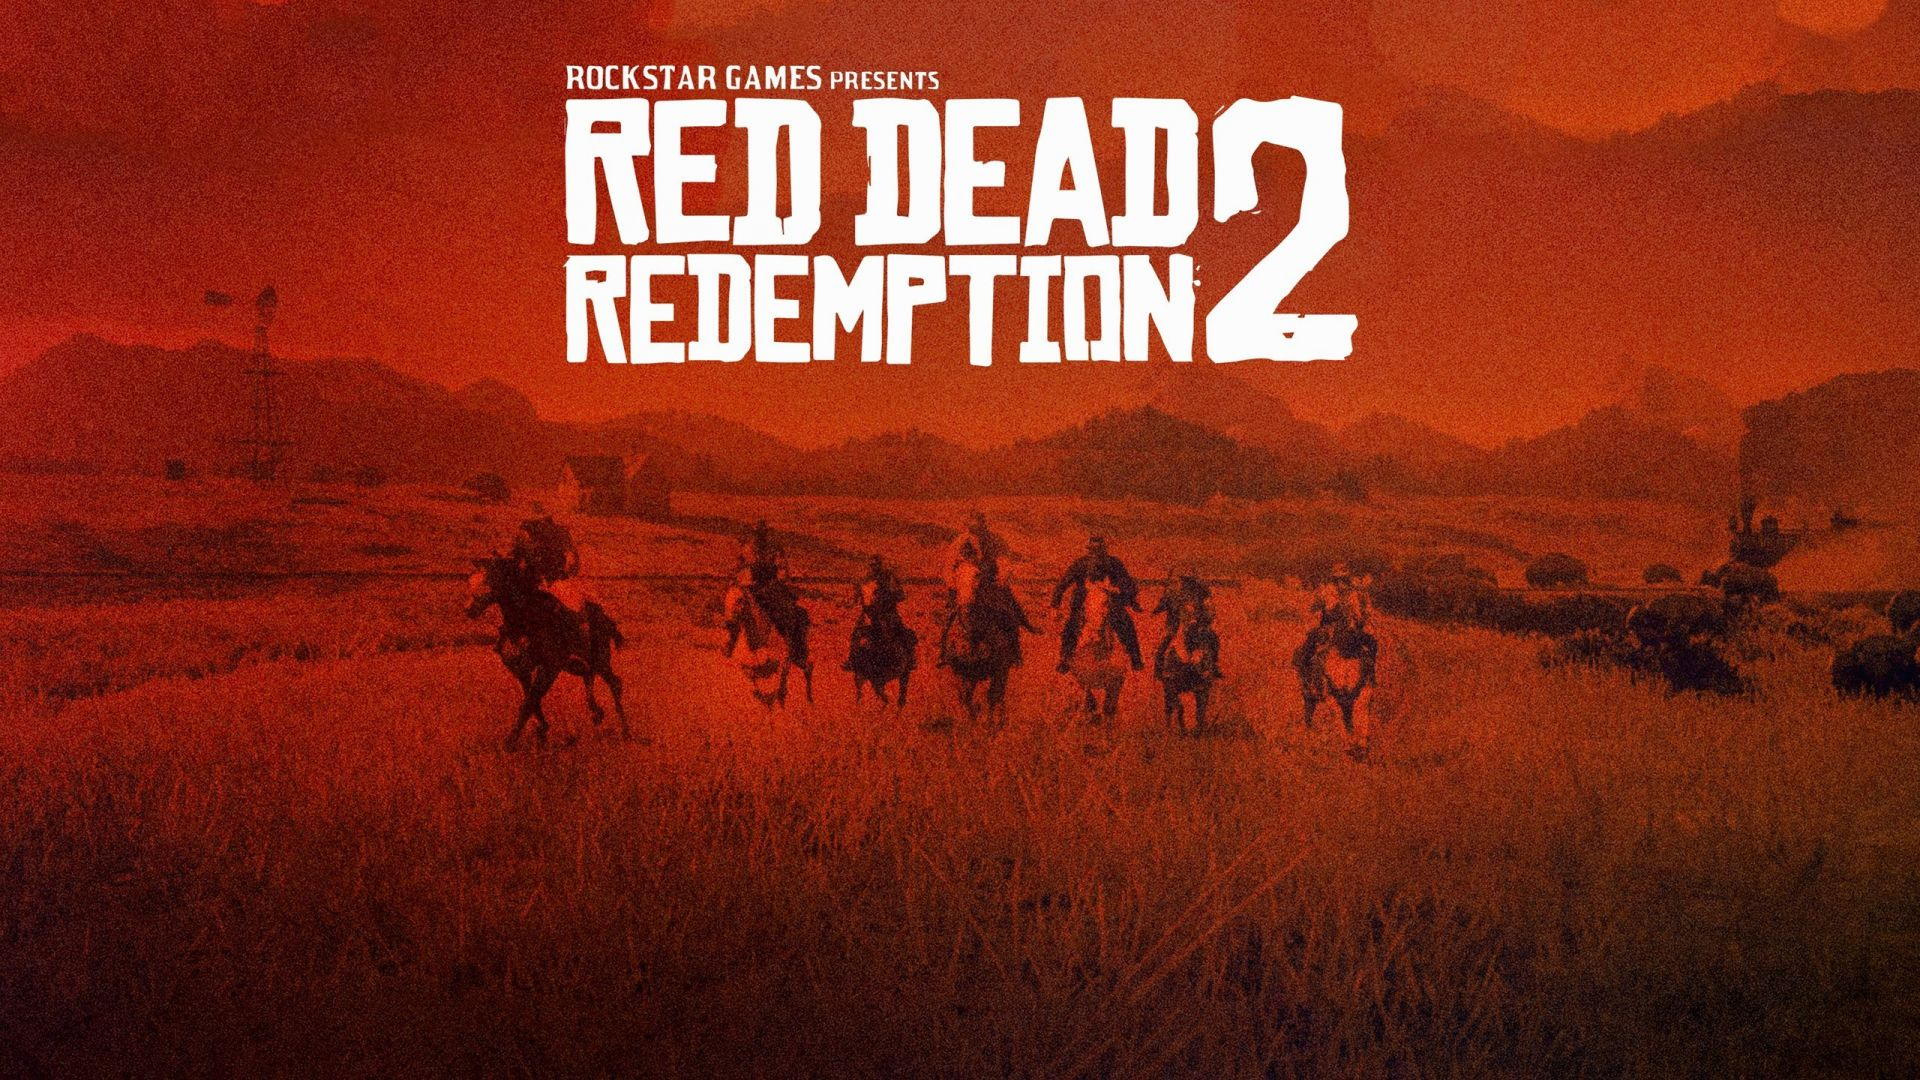 Red Dead Redemption 2, video game, poster